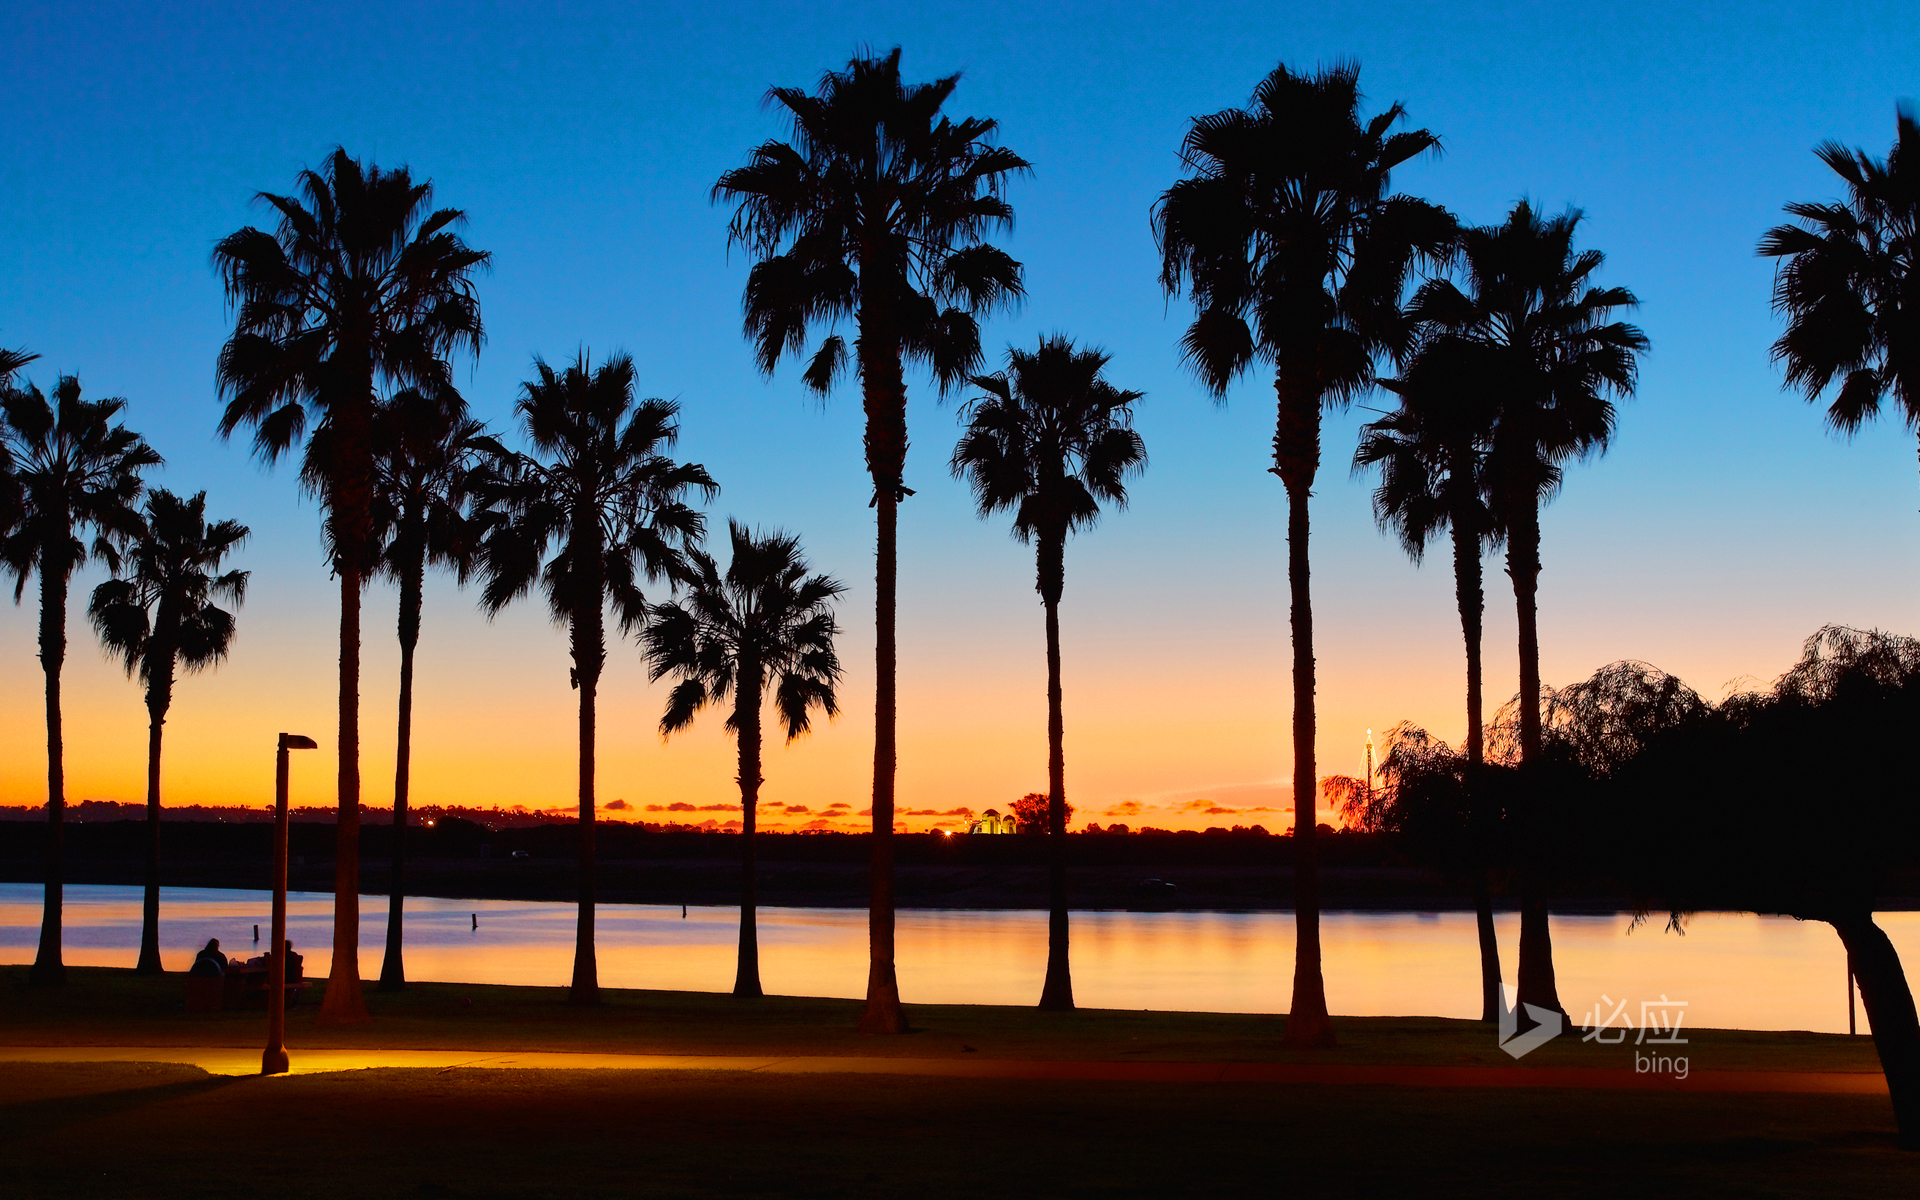 Palm Grove at Mission Bay at Sunset, San Diego, California, USA